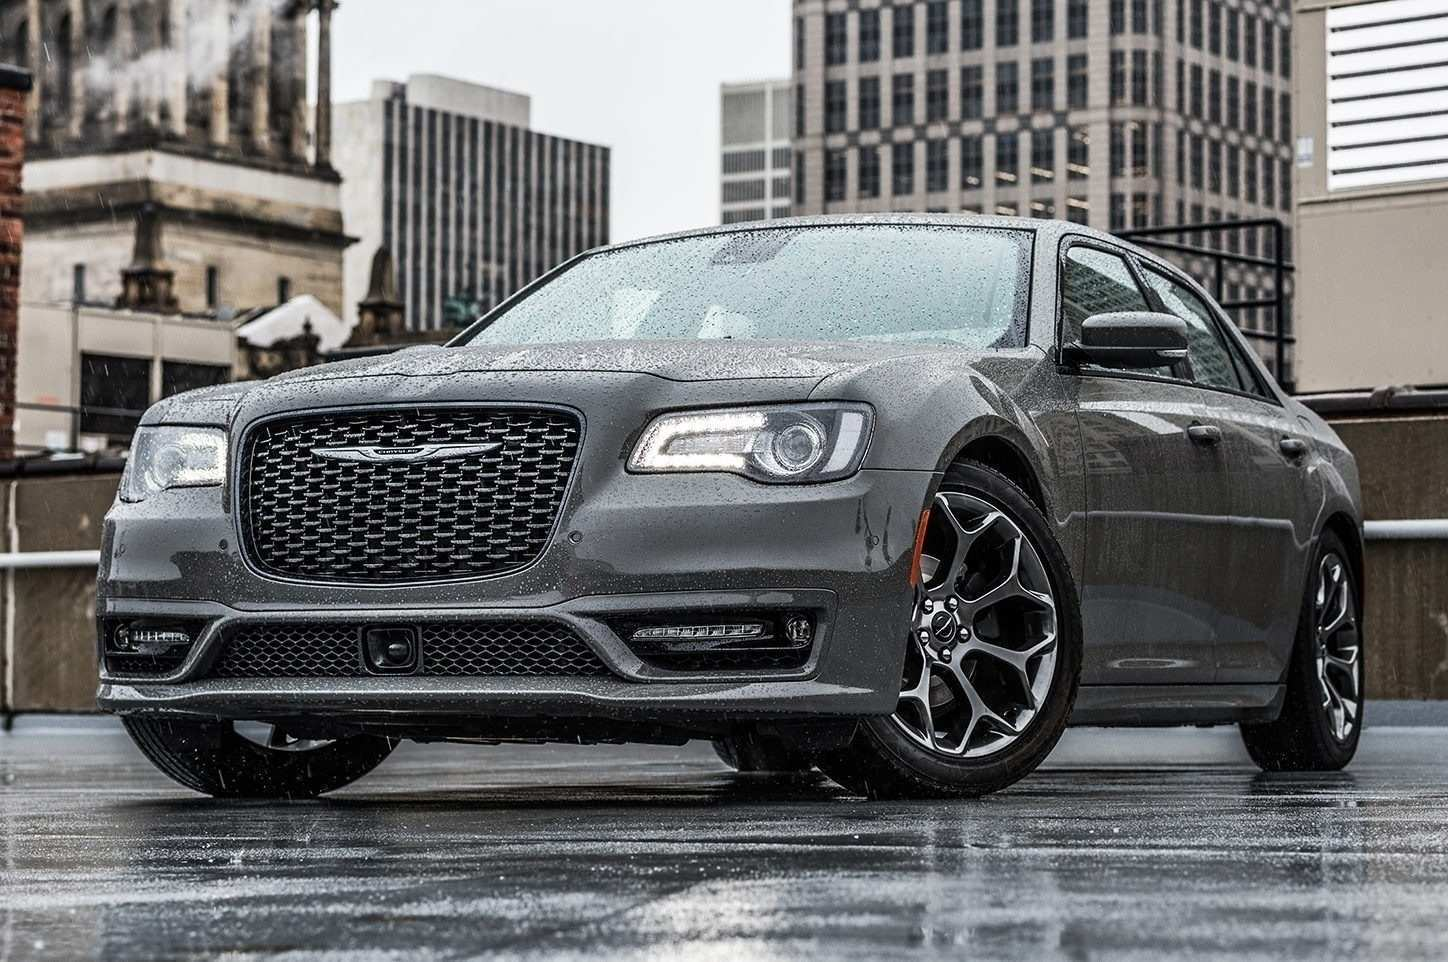 83 A 2020 Chrysler 100 Pictures